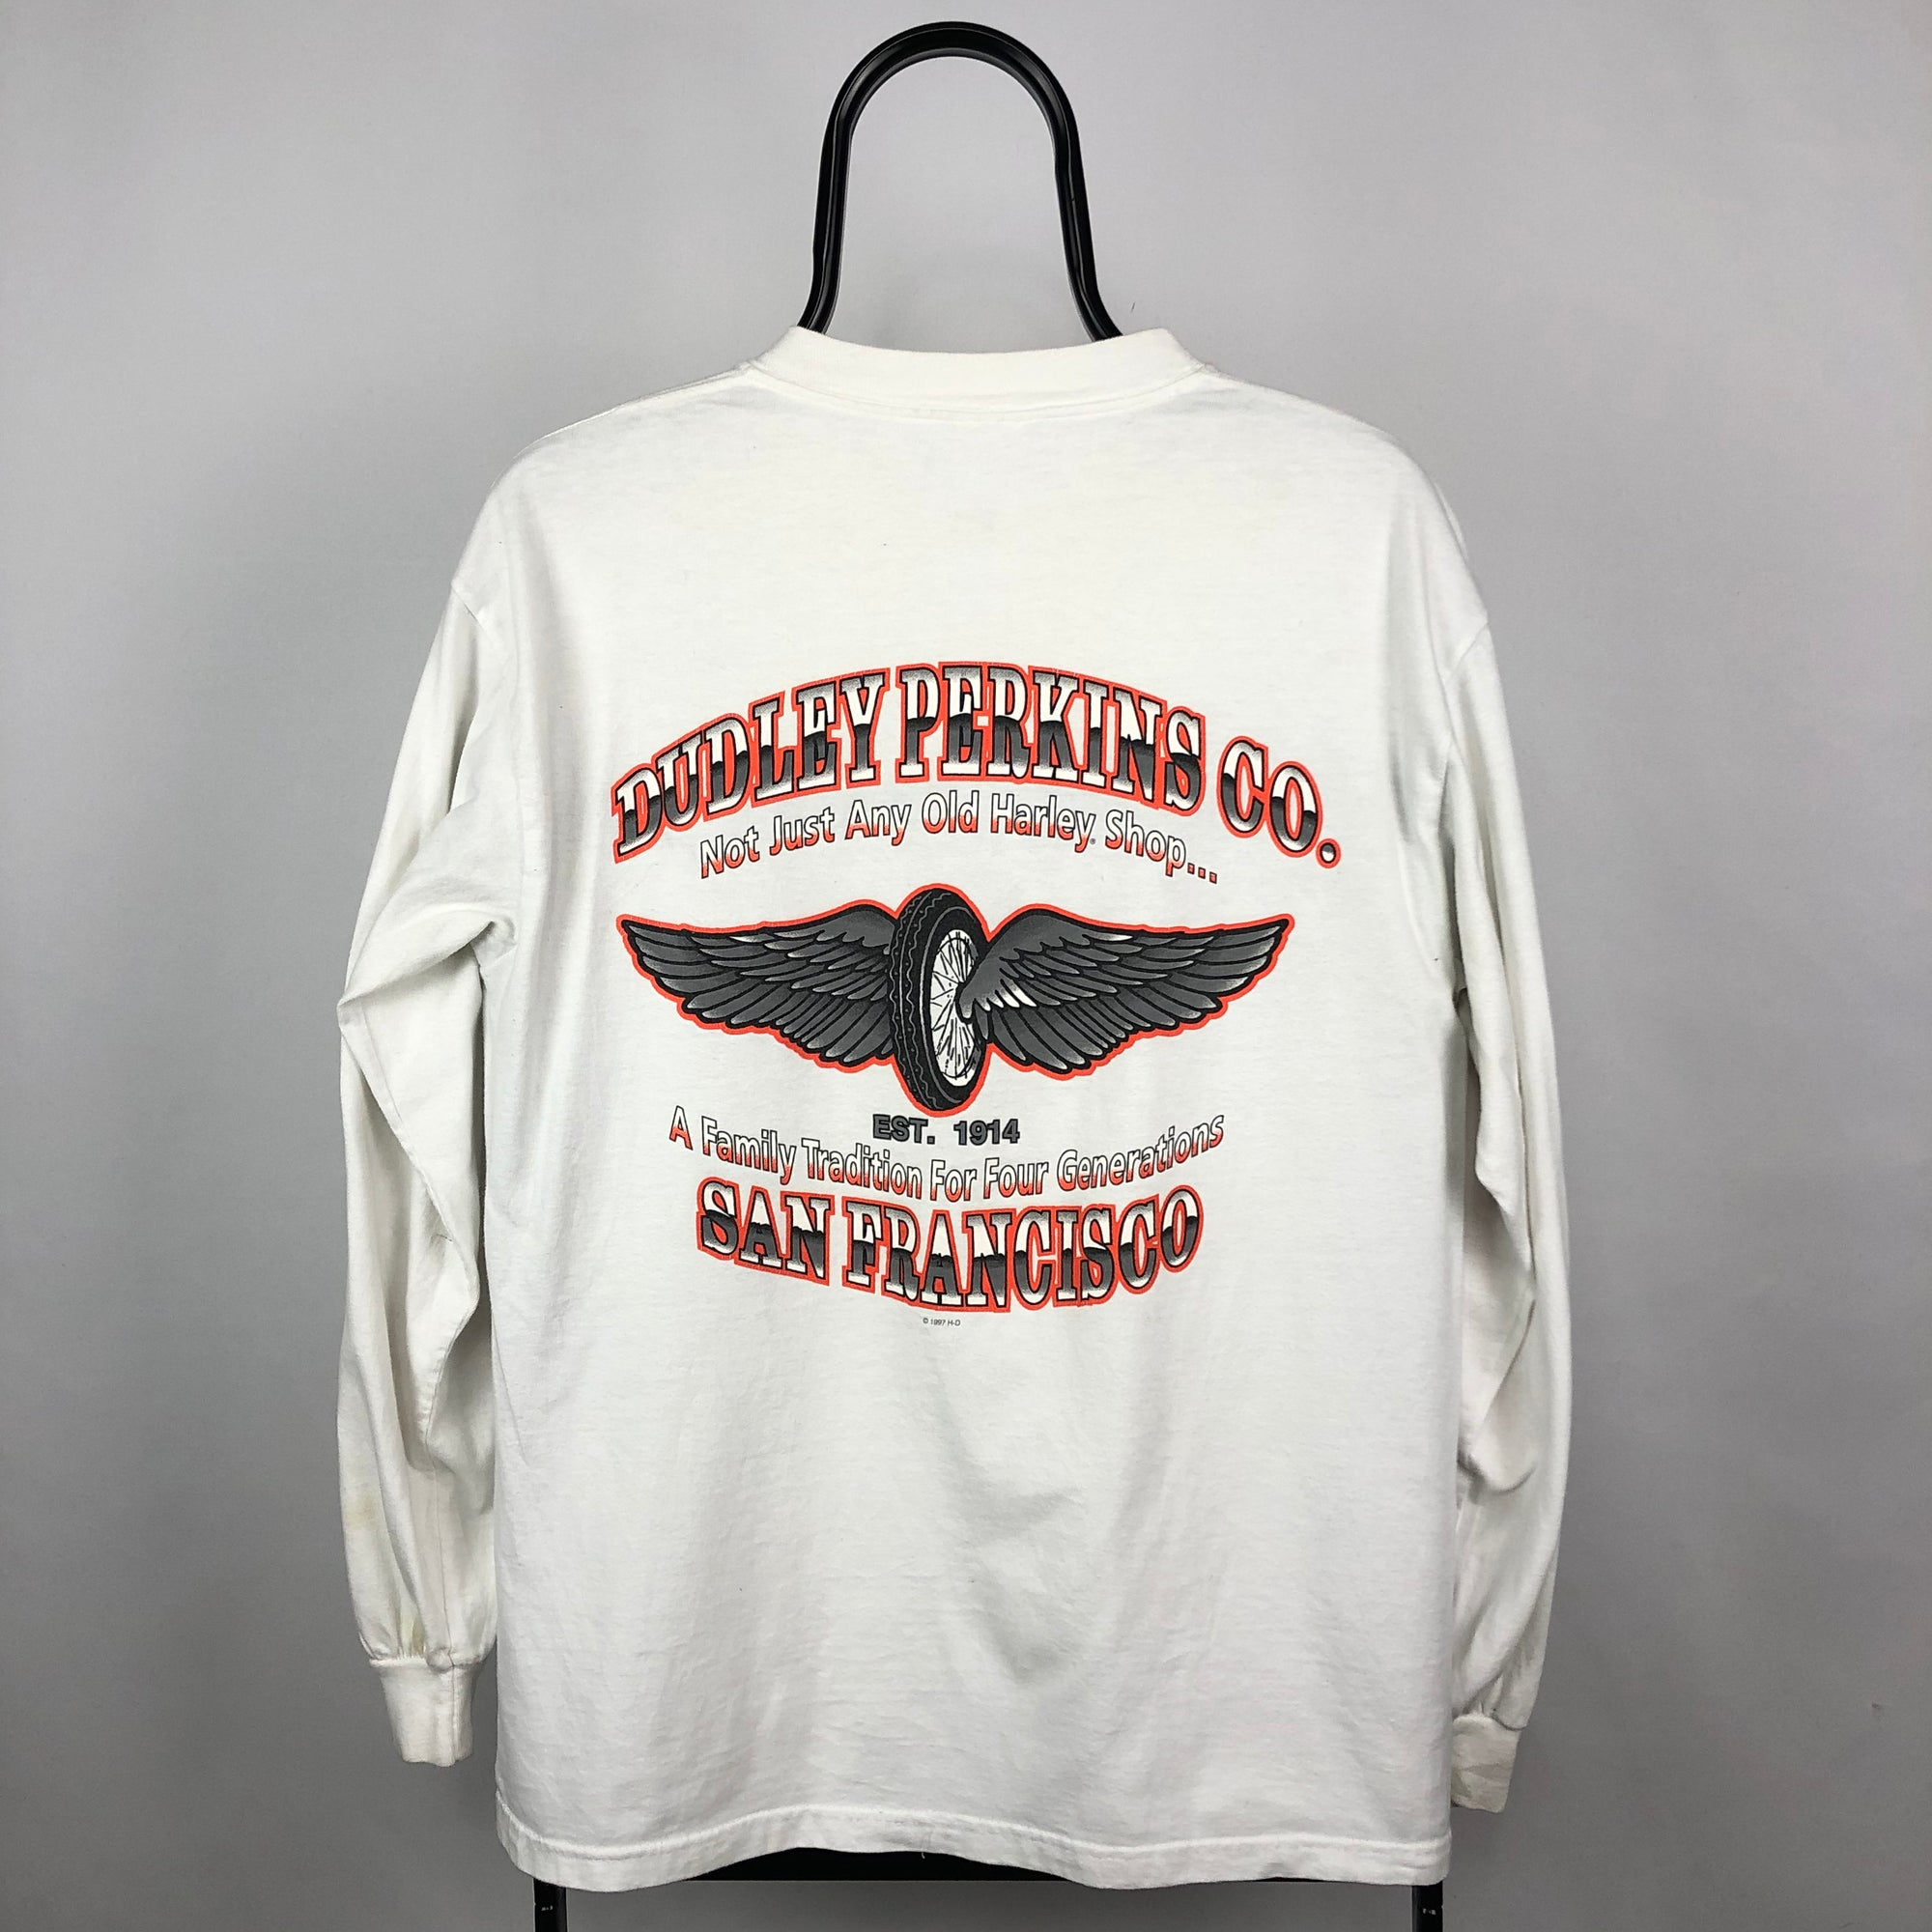 Vintage Harley Davidson Long Sleeve Tee - Men's Medium/Women's Large